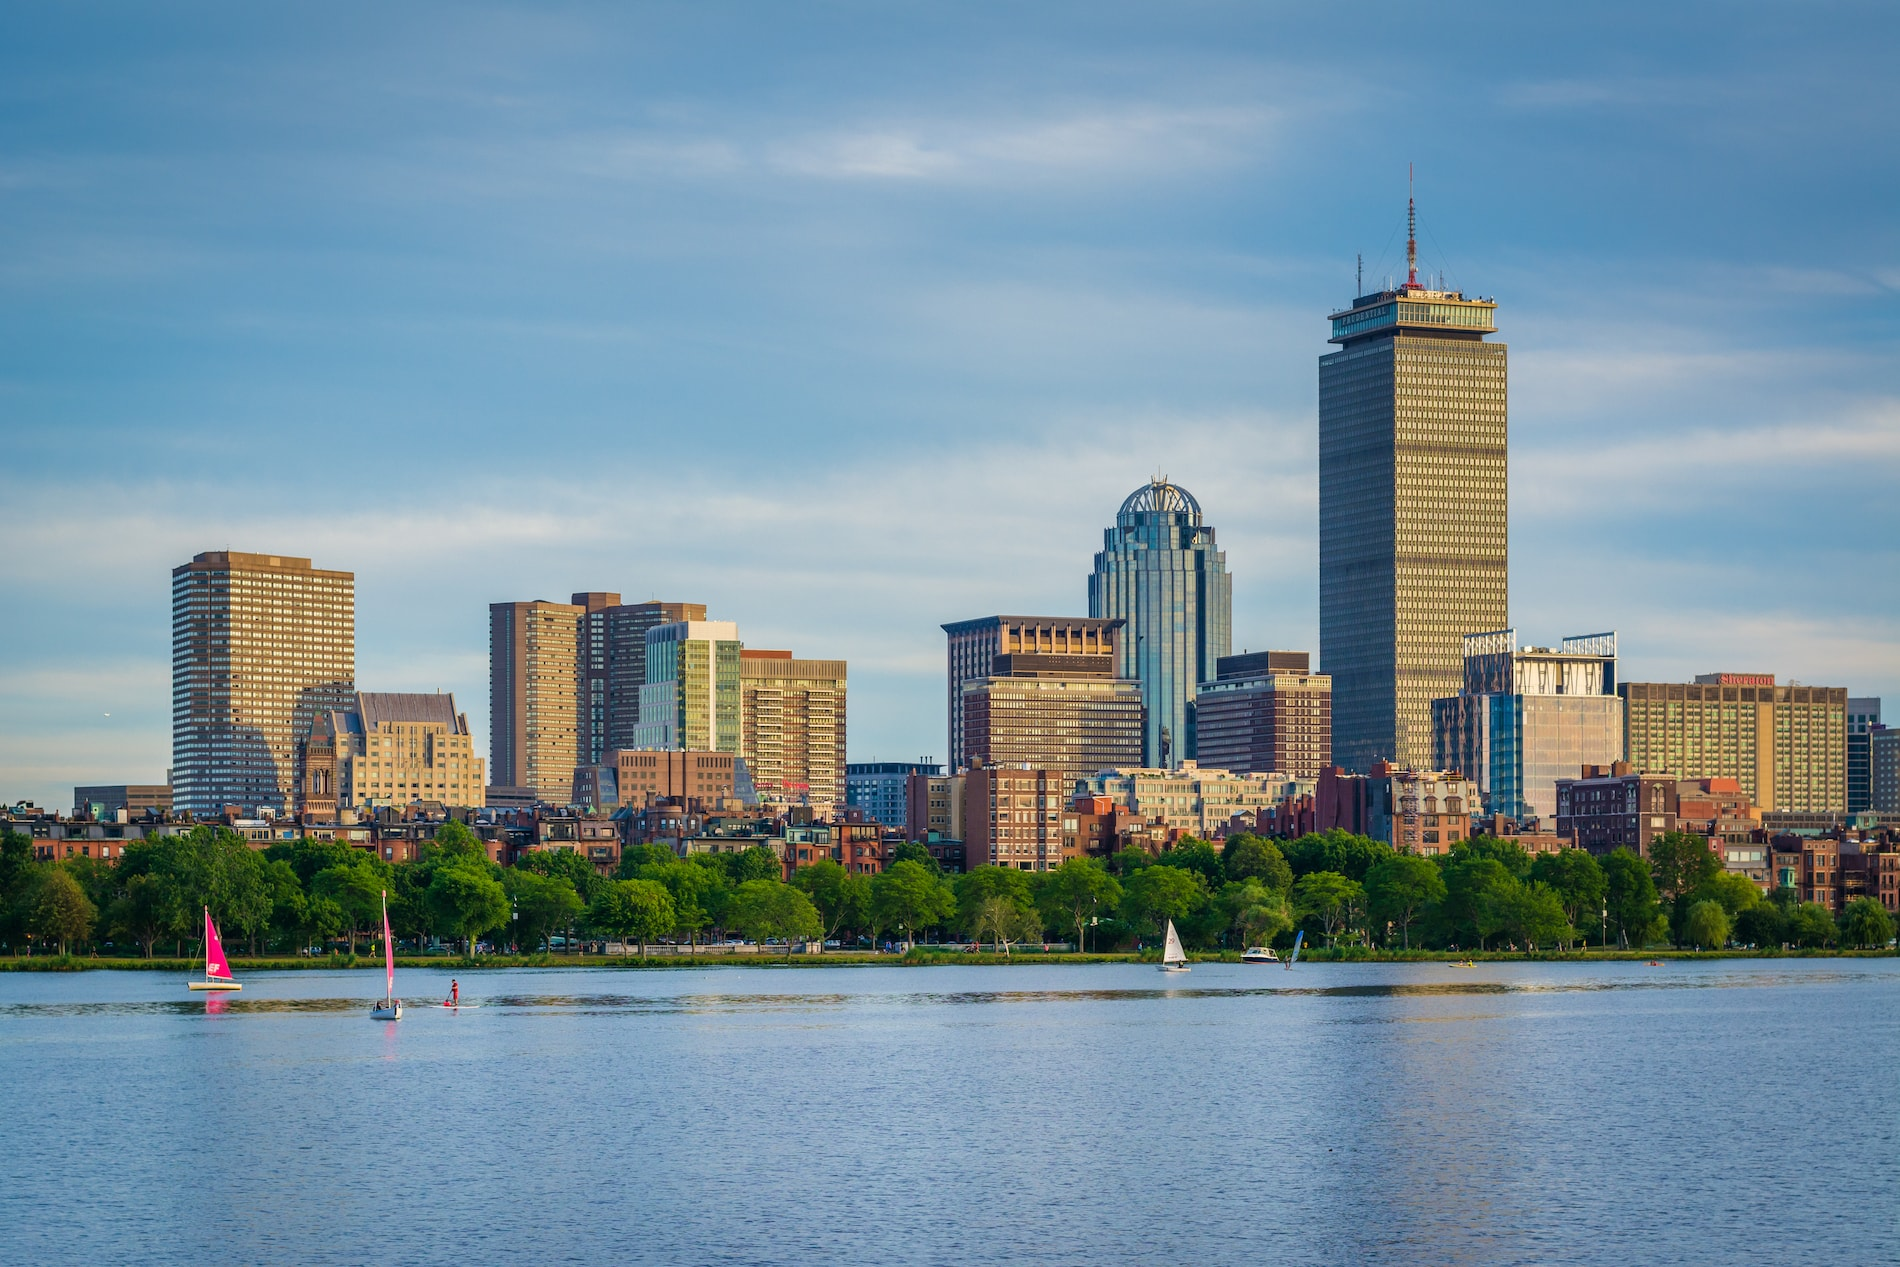 Boston Residential Property Management Companies